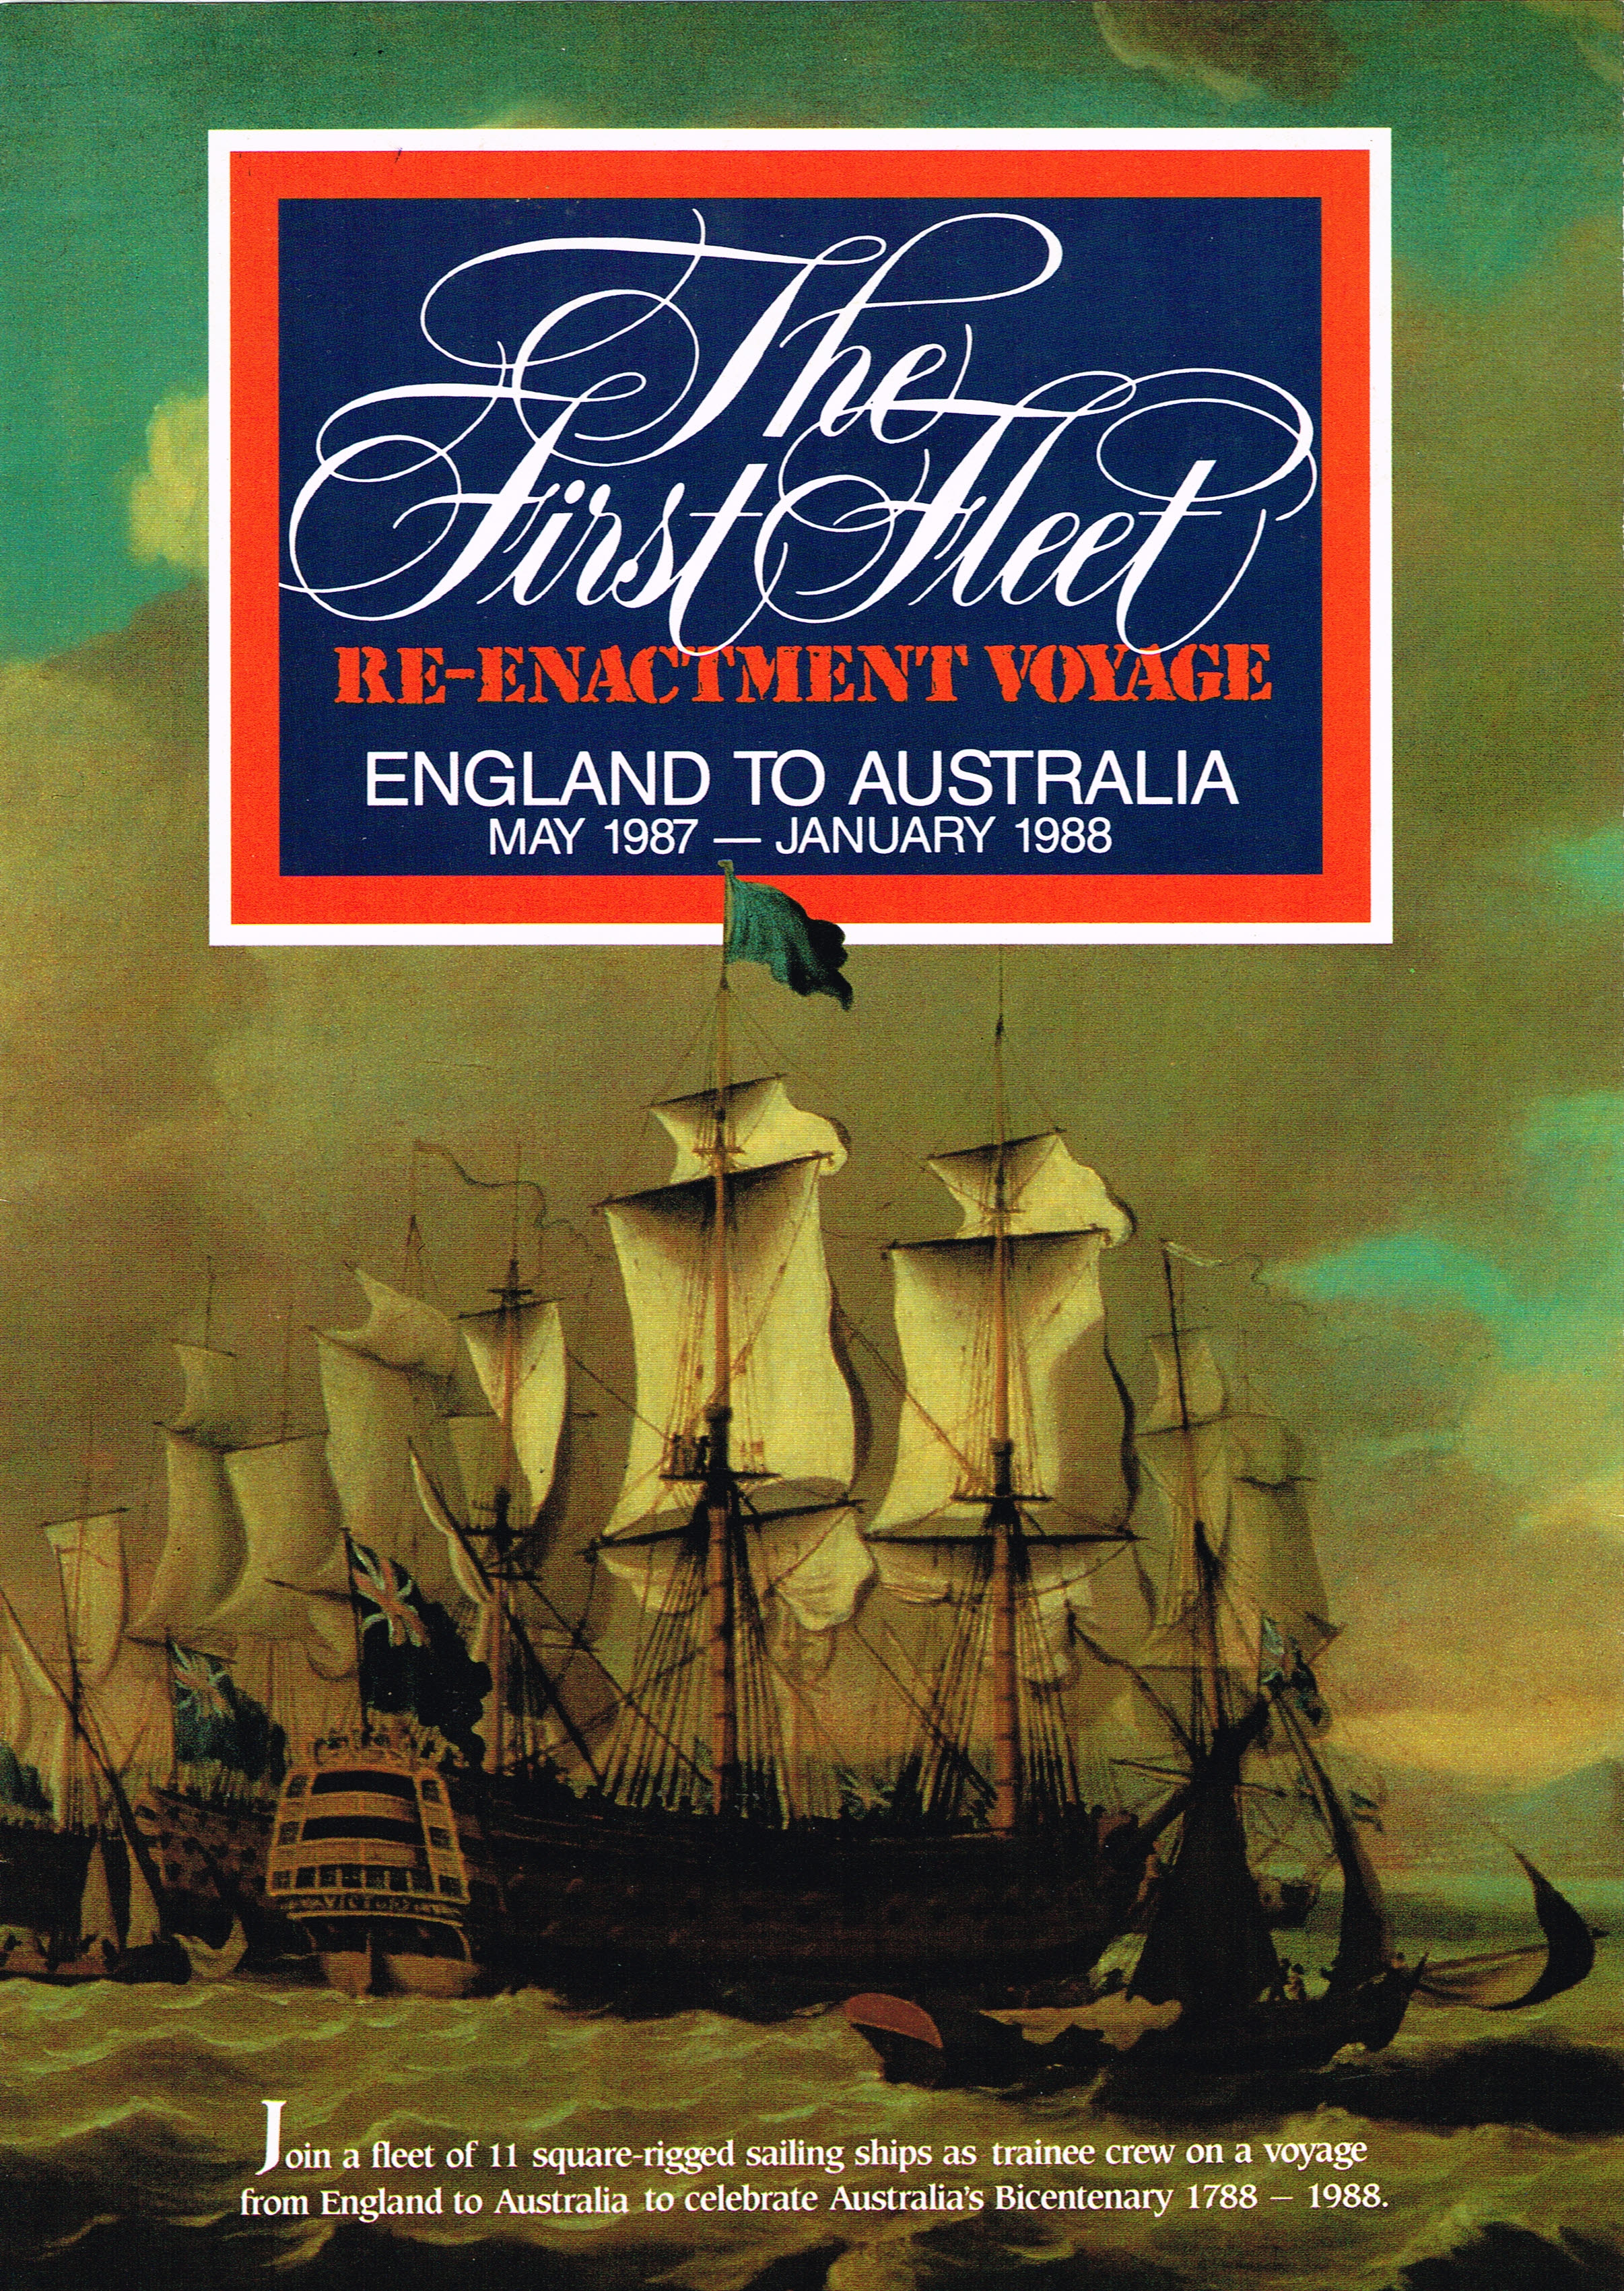 The First Fleet Re-Enactment Voyage : England to Australia May 1987-1988  Goronwy Price & Christine Gee Co-Founders/Directors Australian Himalayan Exhibitions - Travel Organisers